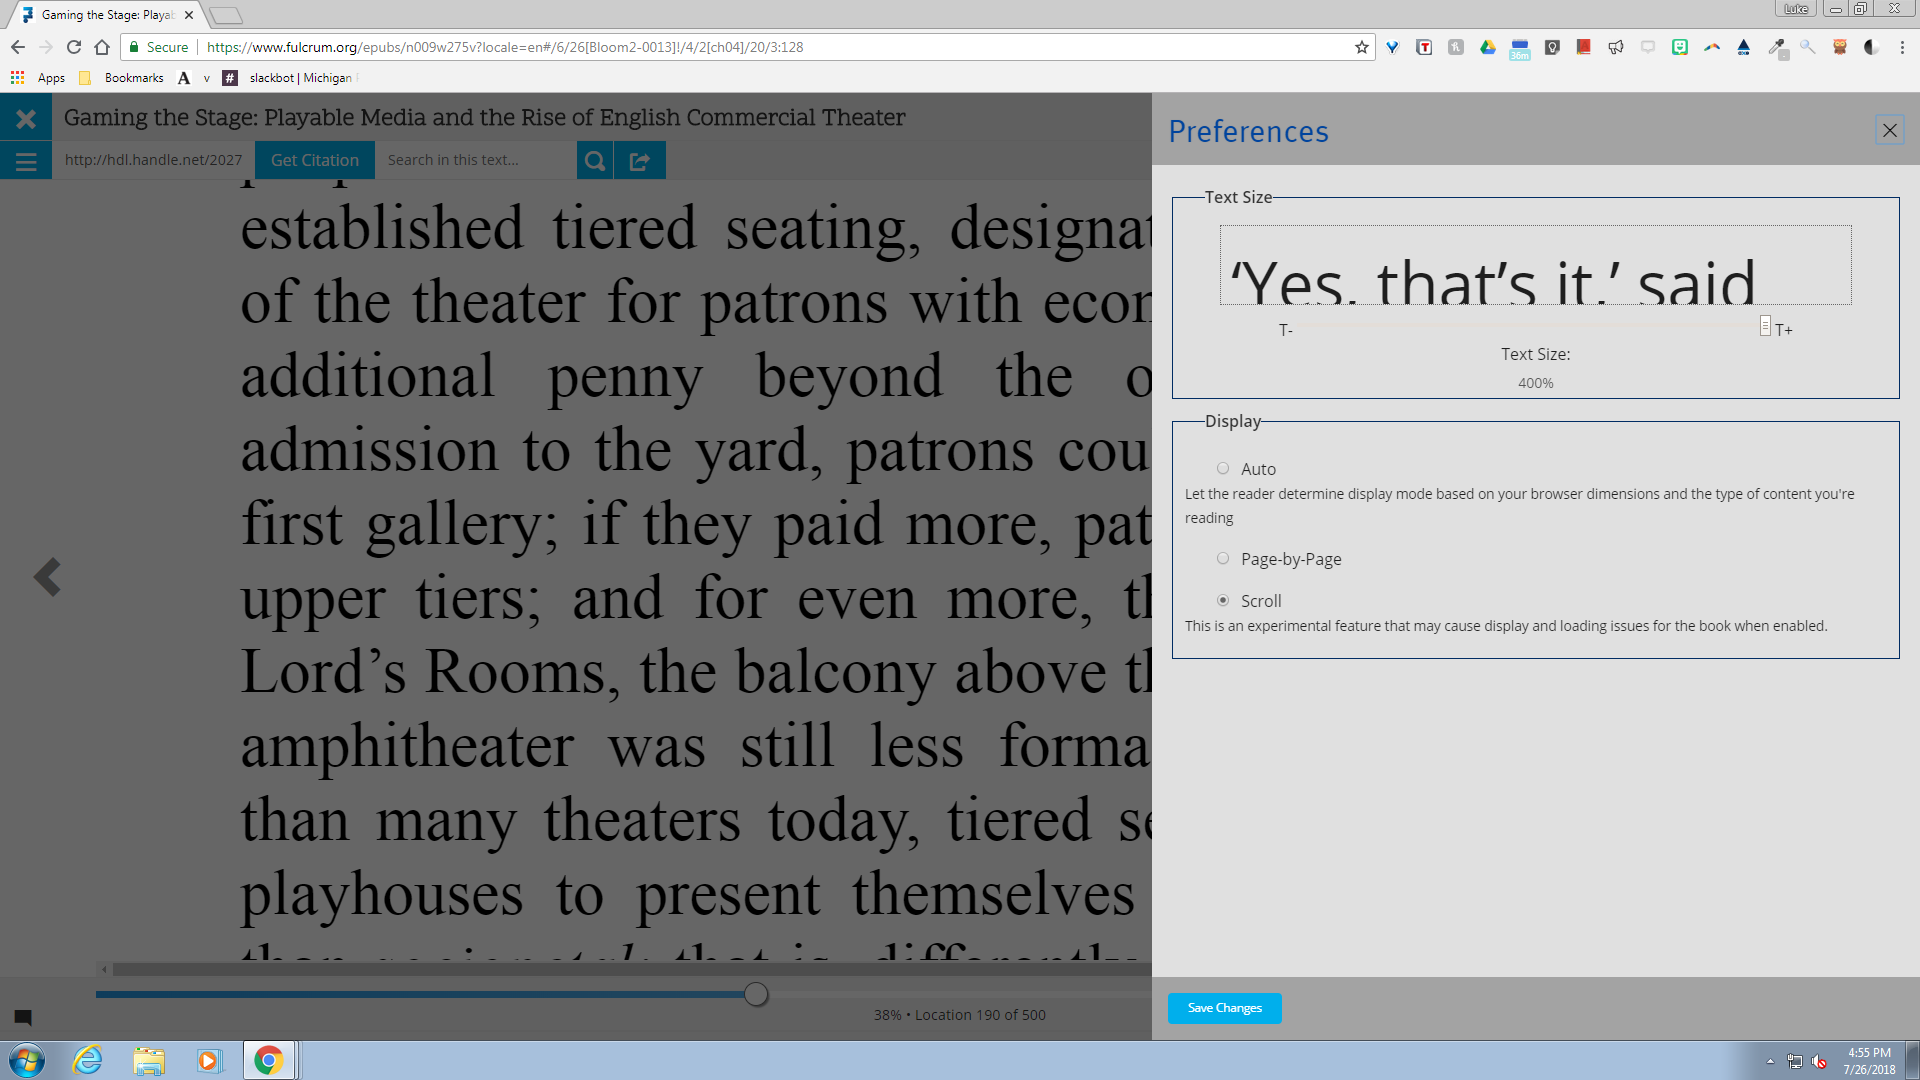 A screenshot of E-Reader preferences panel with text size increase/decrease options.